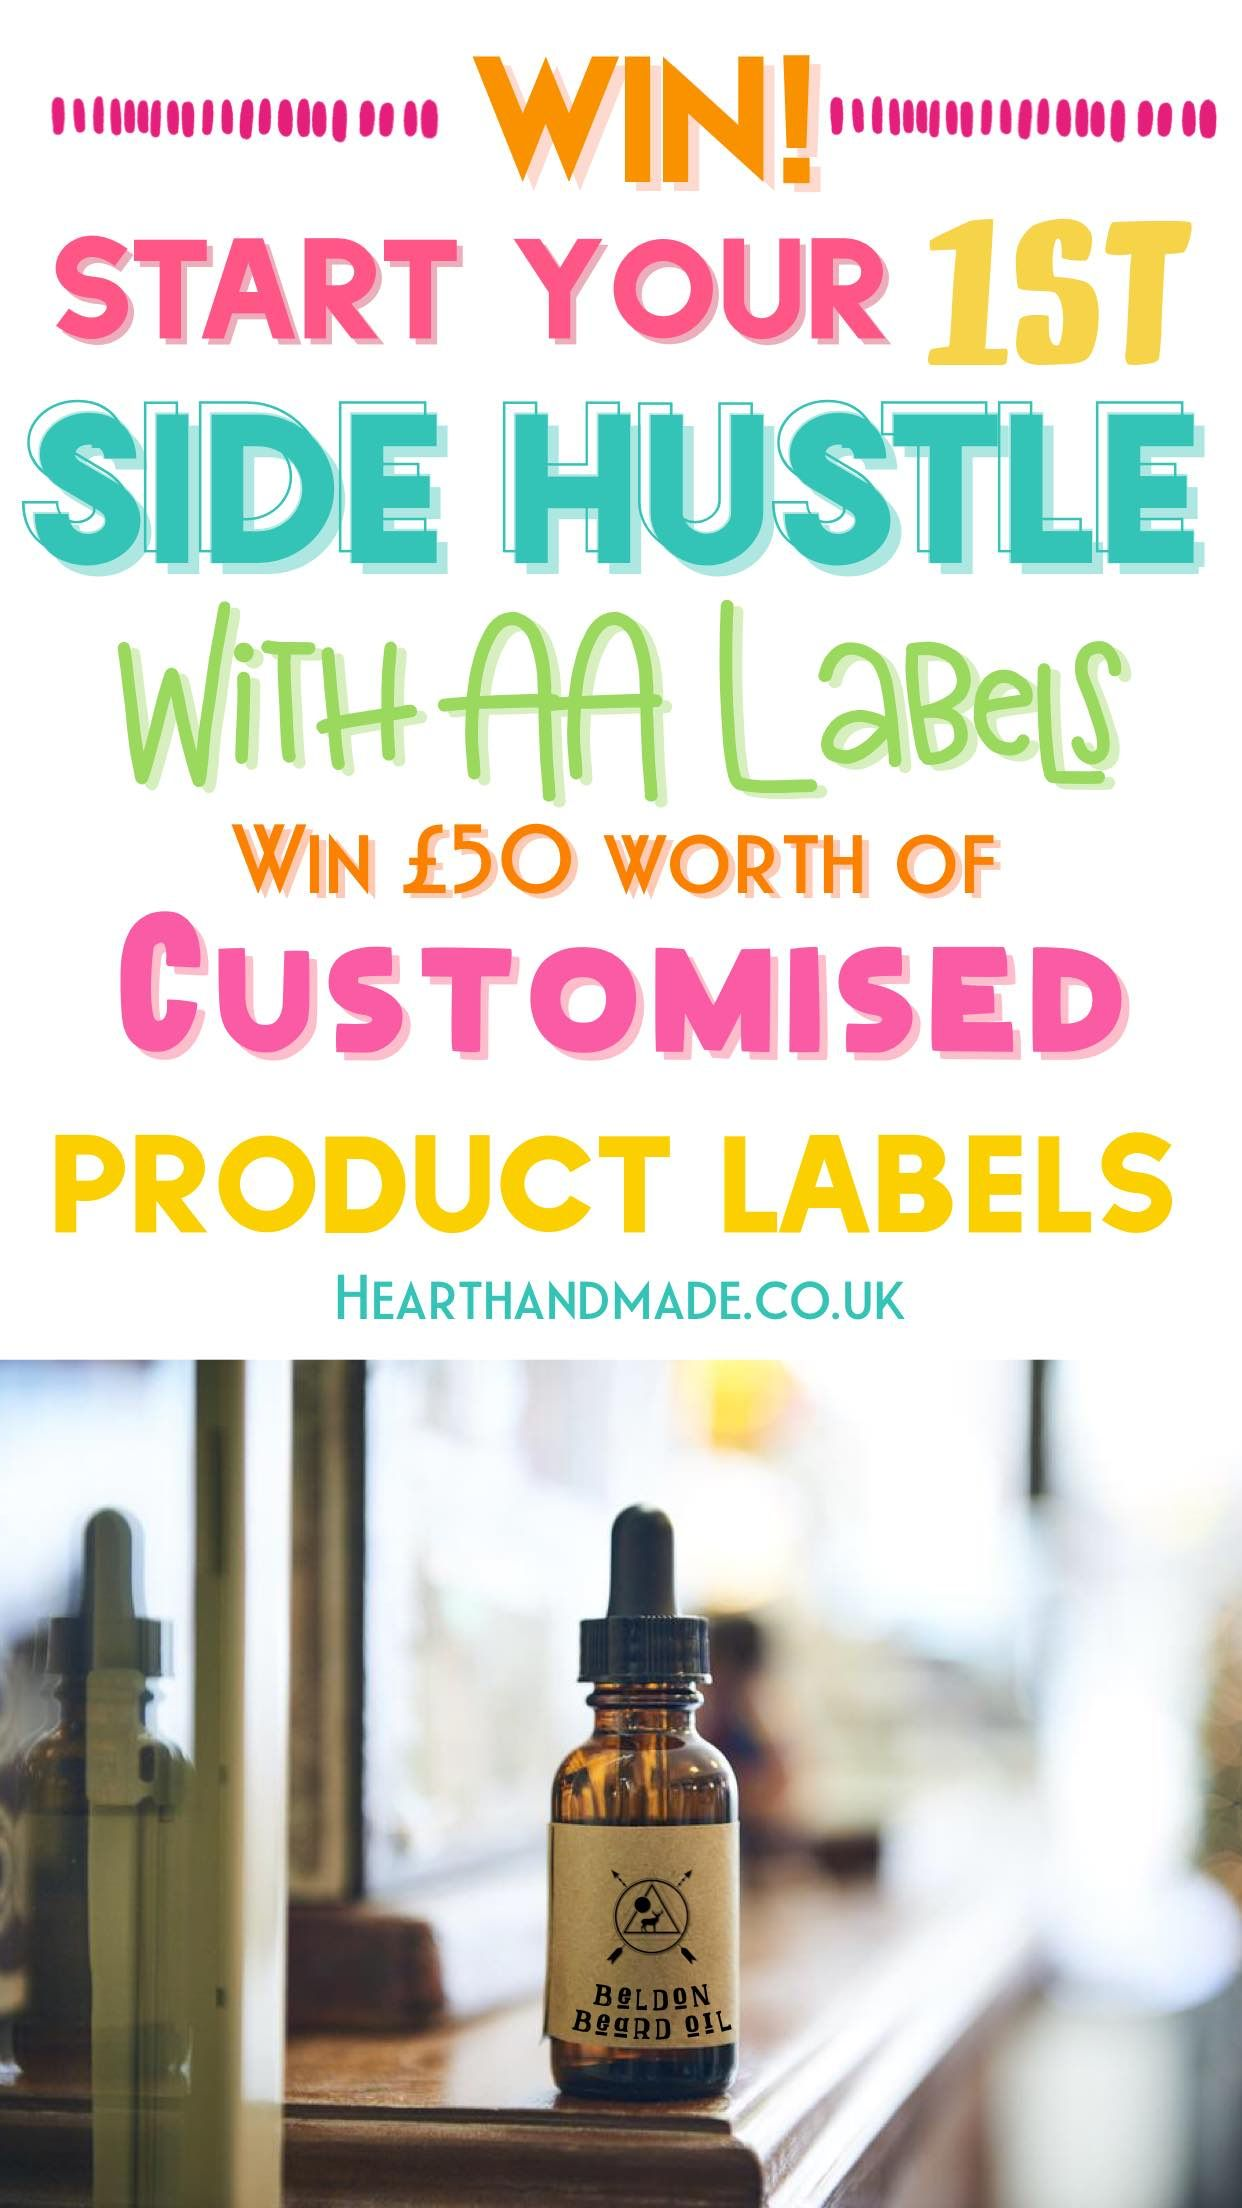 [CLOSED] Launch your Side Hustle with AA Labels' Giveaway